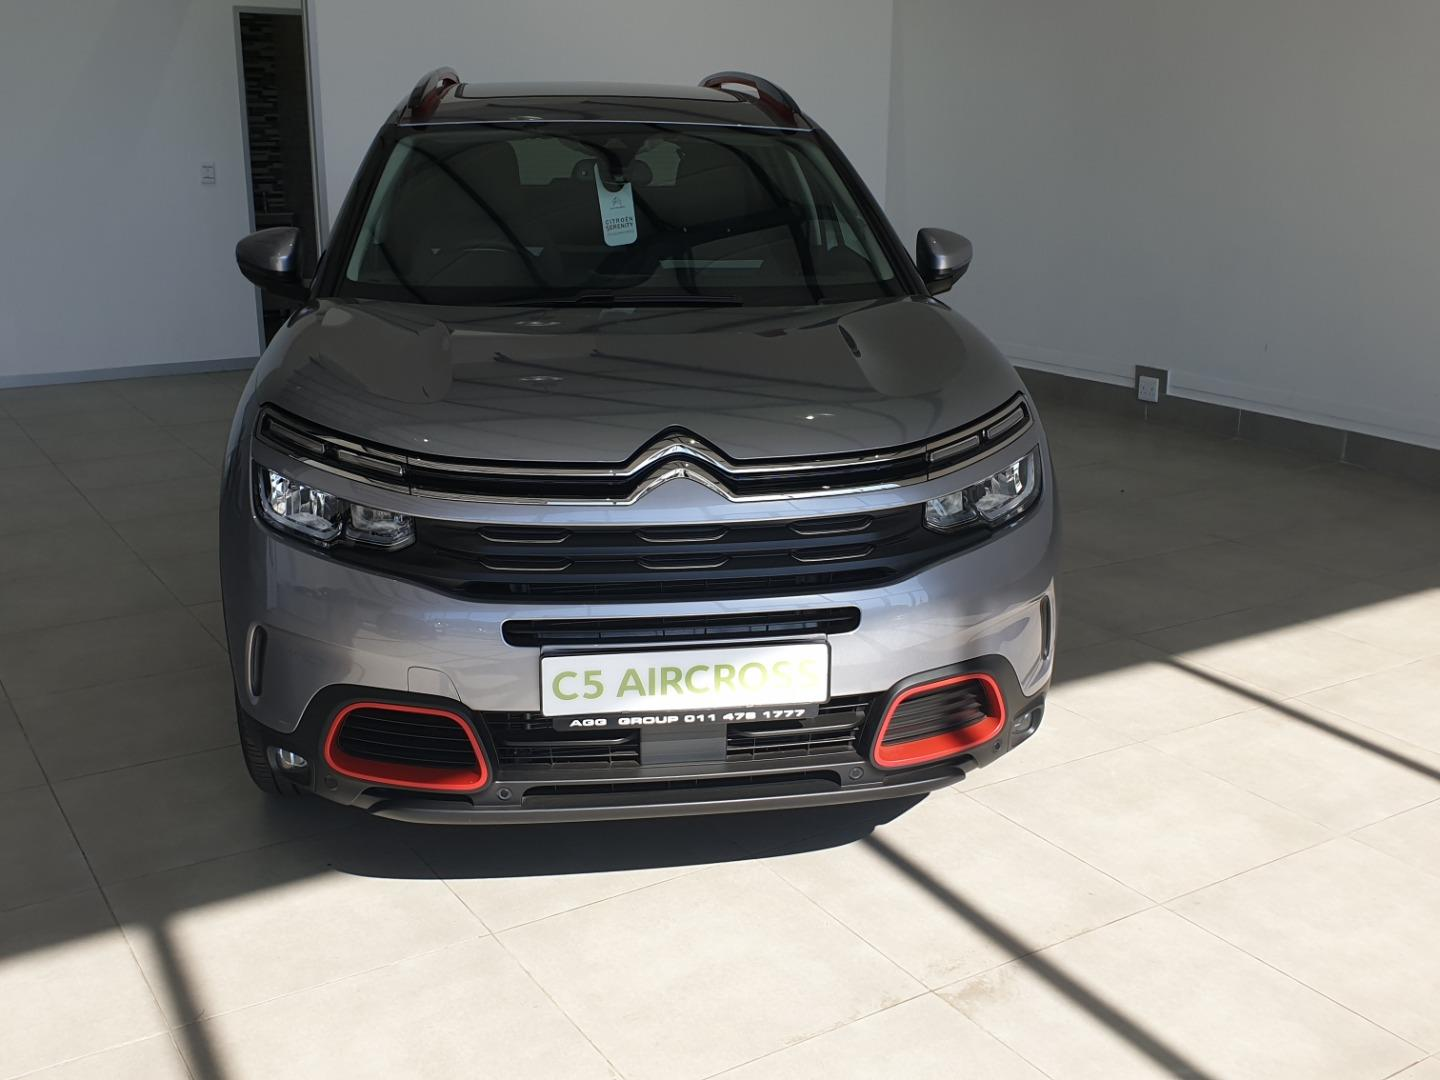 2020 Citroen C5 Aircross 1.6 Thp Turbo Shine At